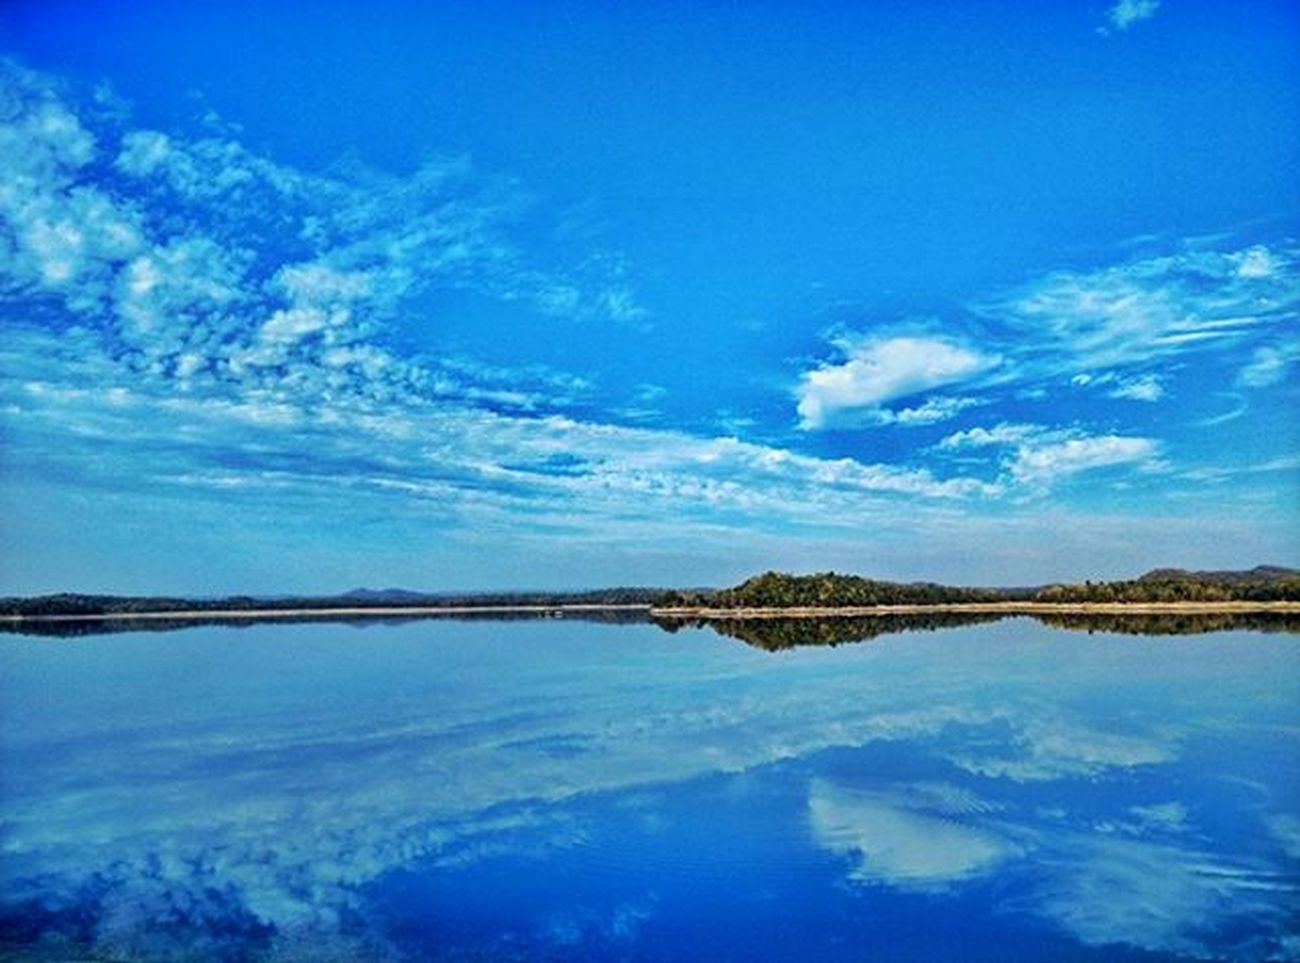 Bluesky Bluewatter Pench Reflection